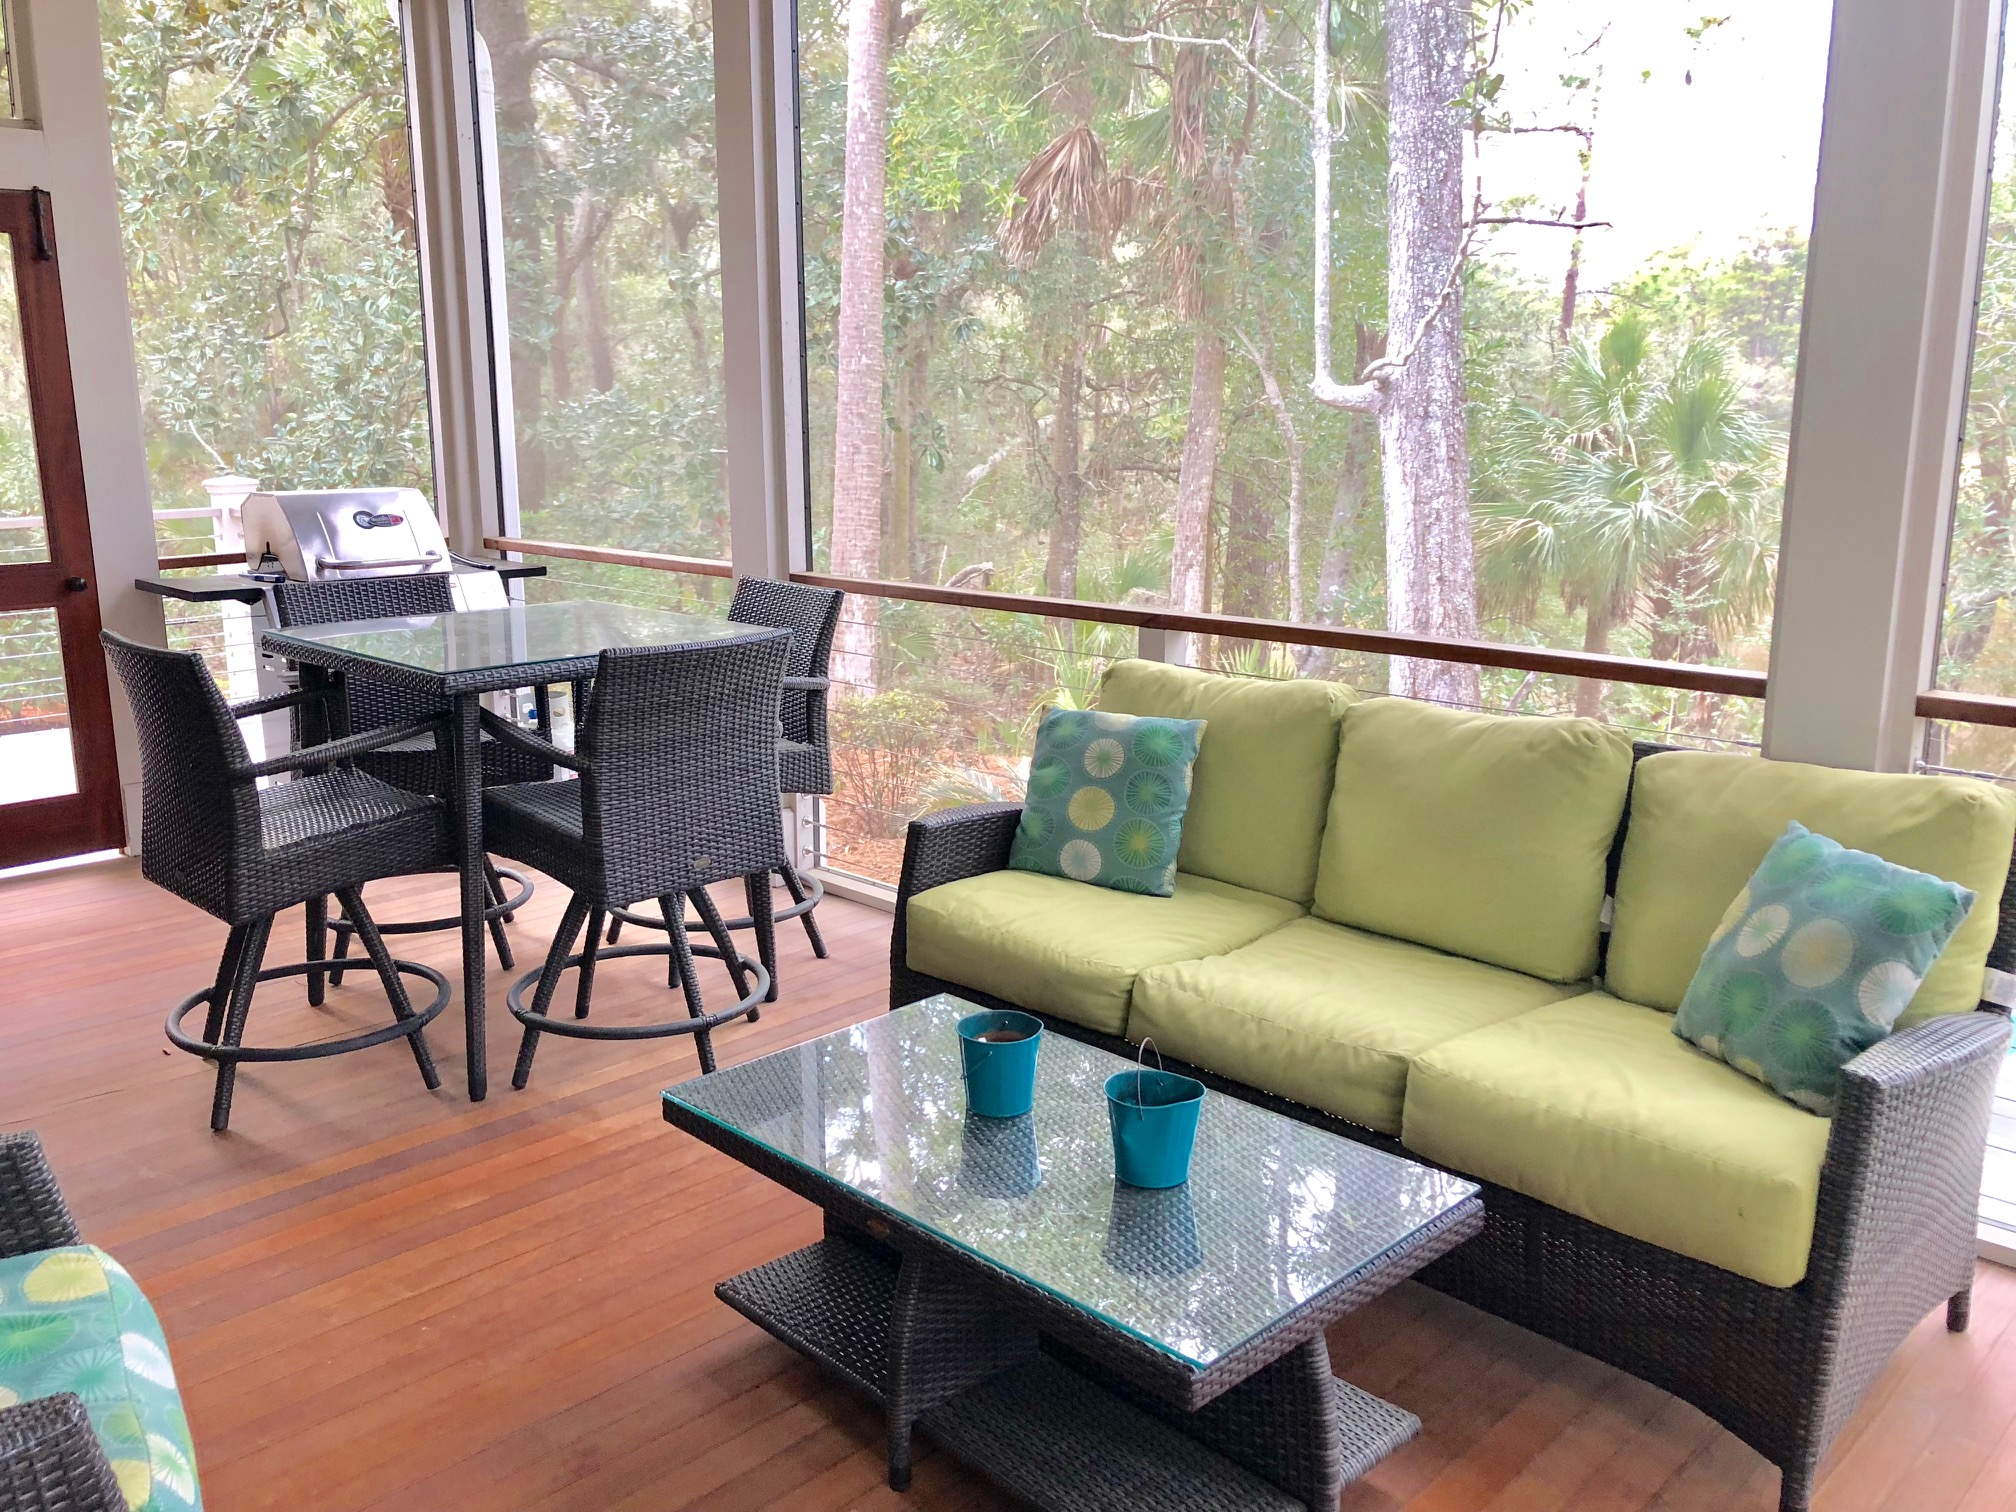 Access the screen porch from the great room.  There is ample space for relaxing and dining.  The screen porch also houses a gas grill.